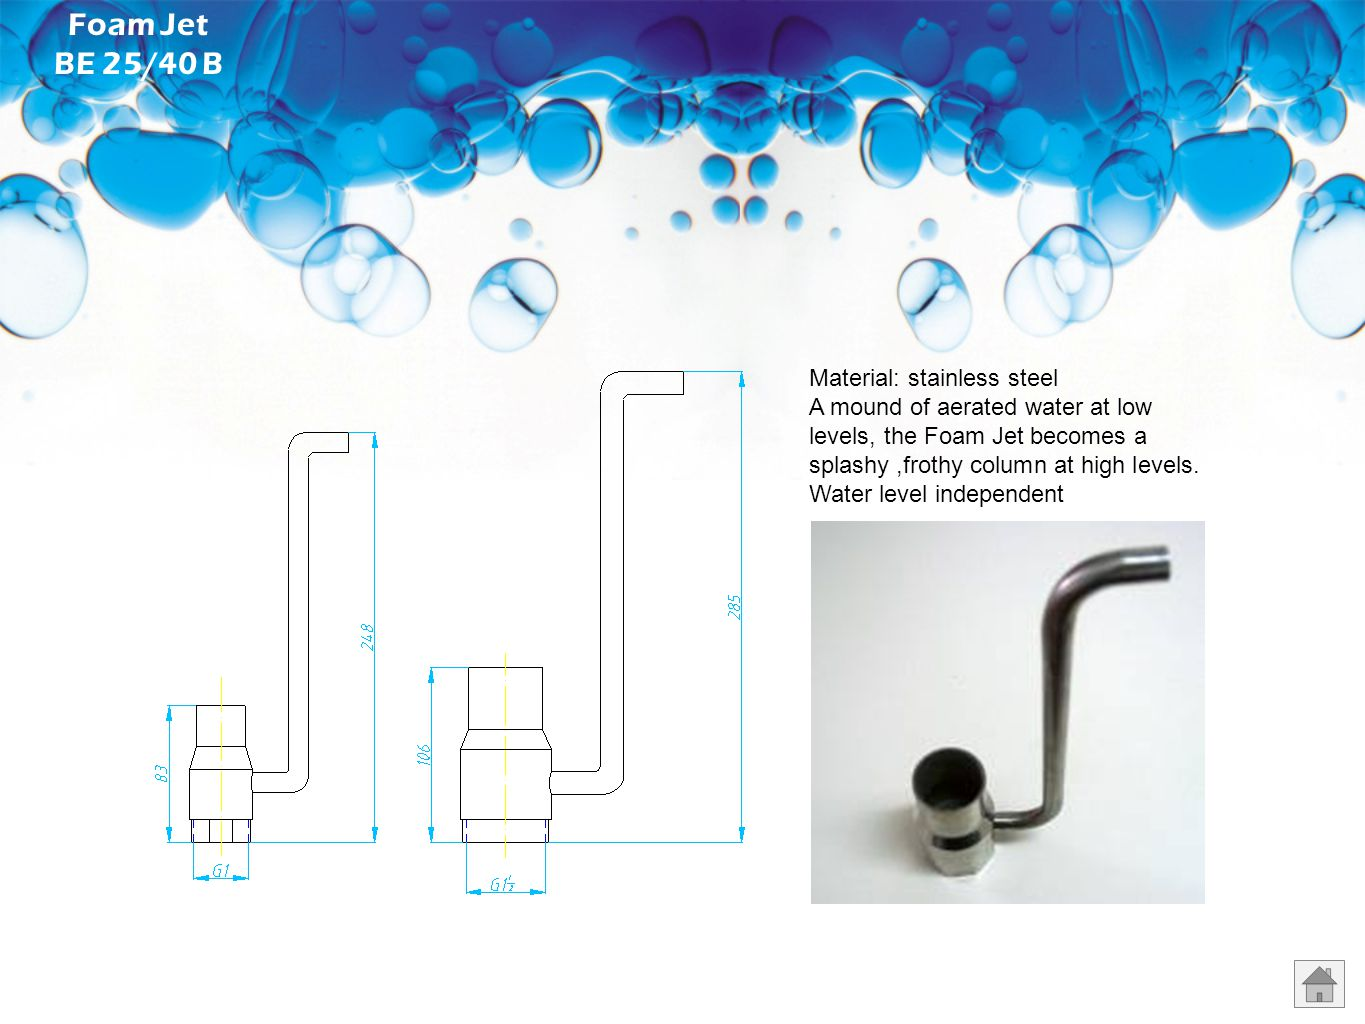 Foam Jet BE 25/40 B Material: stainless steel